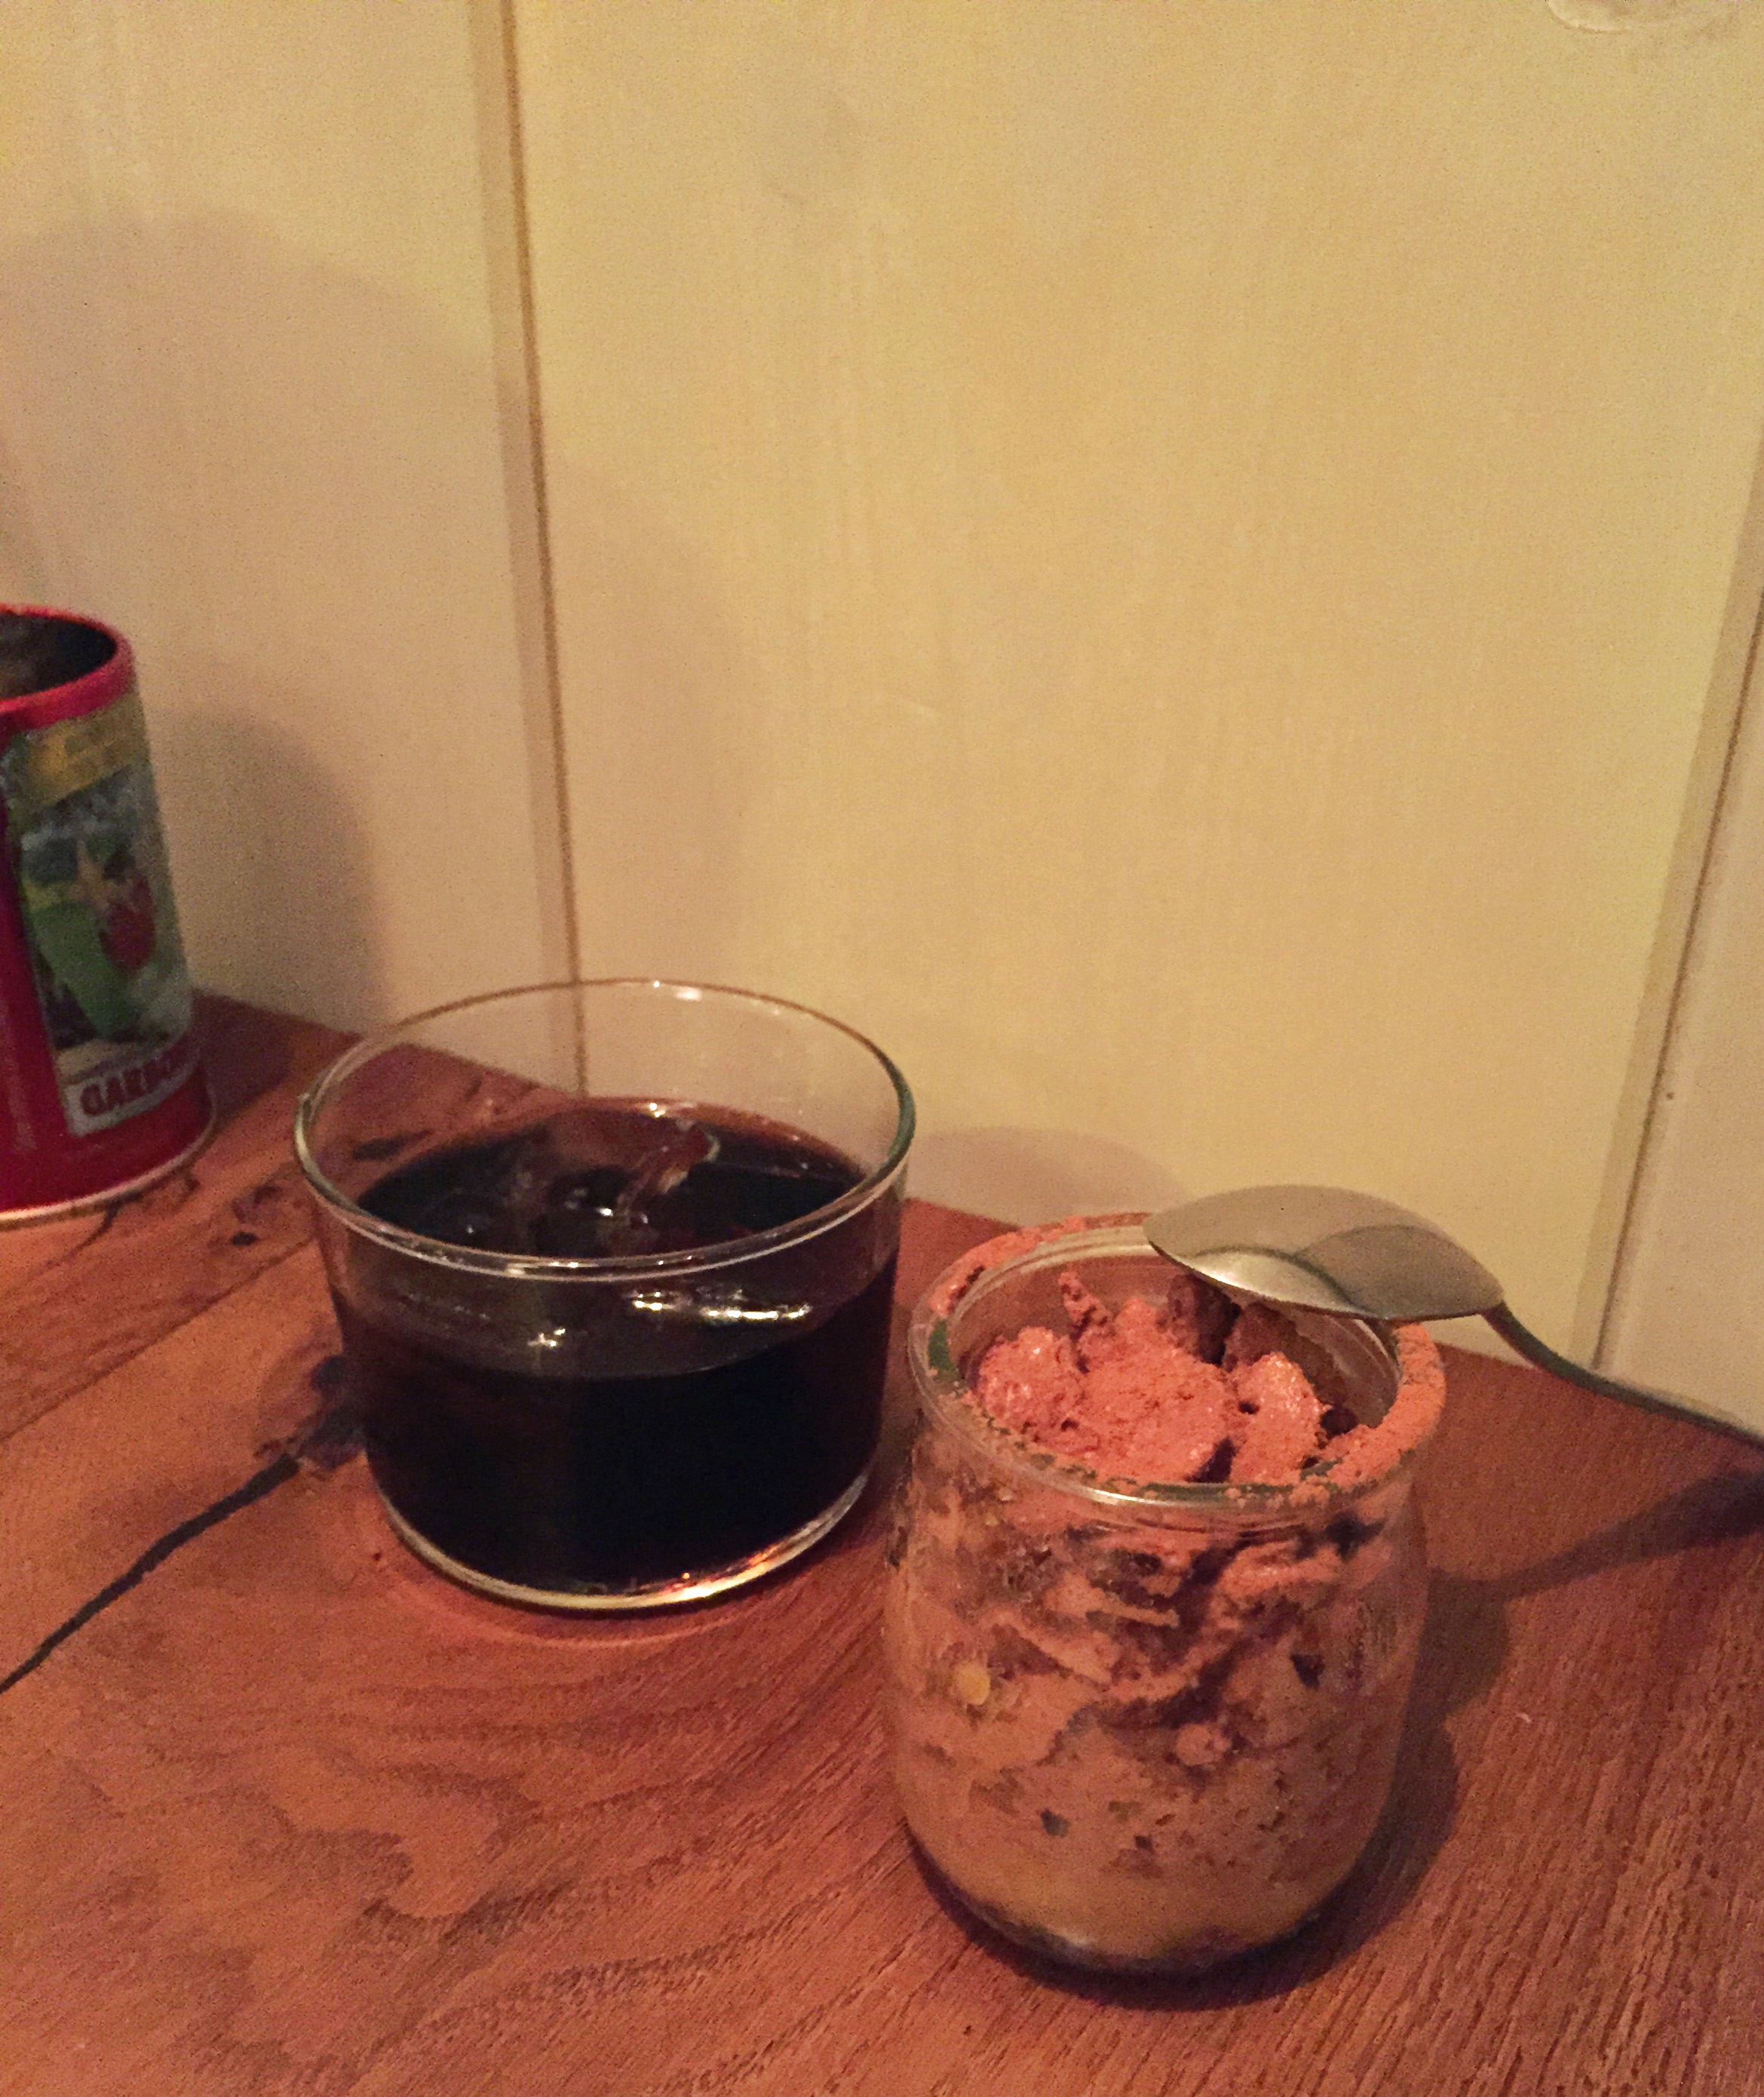 TAPAS REVOLUTION SHOREDITCH | OMAR ALLIBHOY | CHOC POT | WE LOVE FOOD, IT'S ALL WE EAT